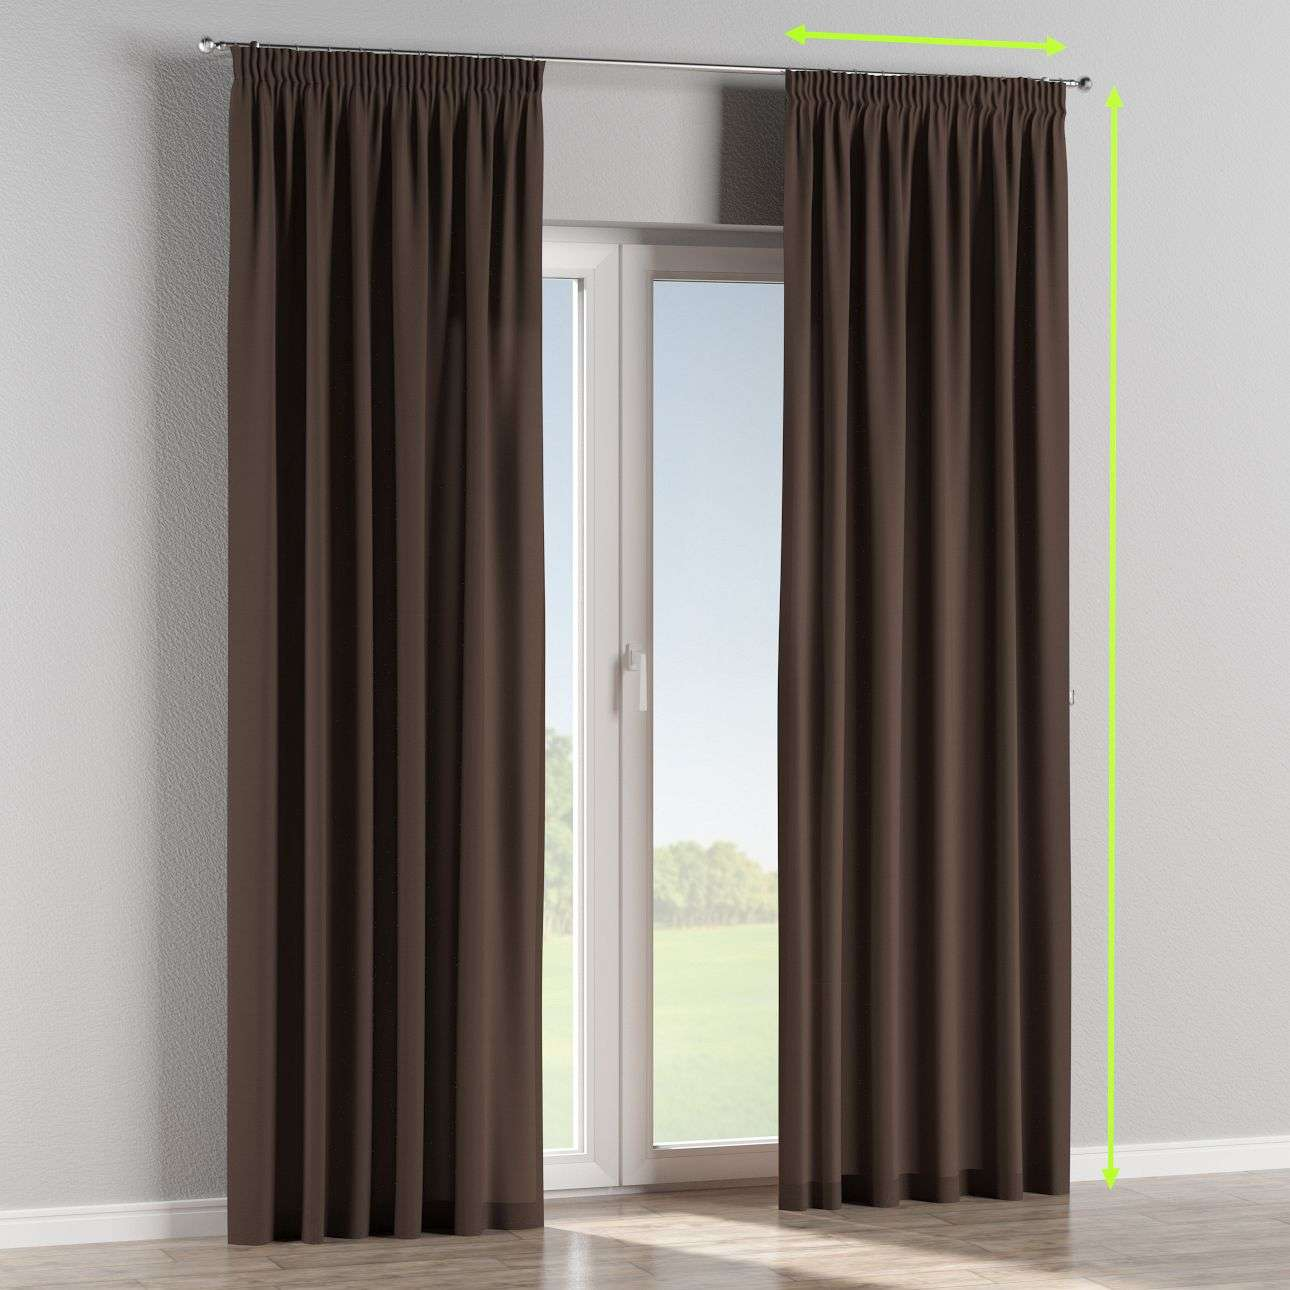 Pencil pleat curtains in collection Cotton Panama, fabric: 702-03